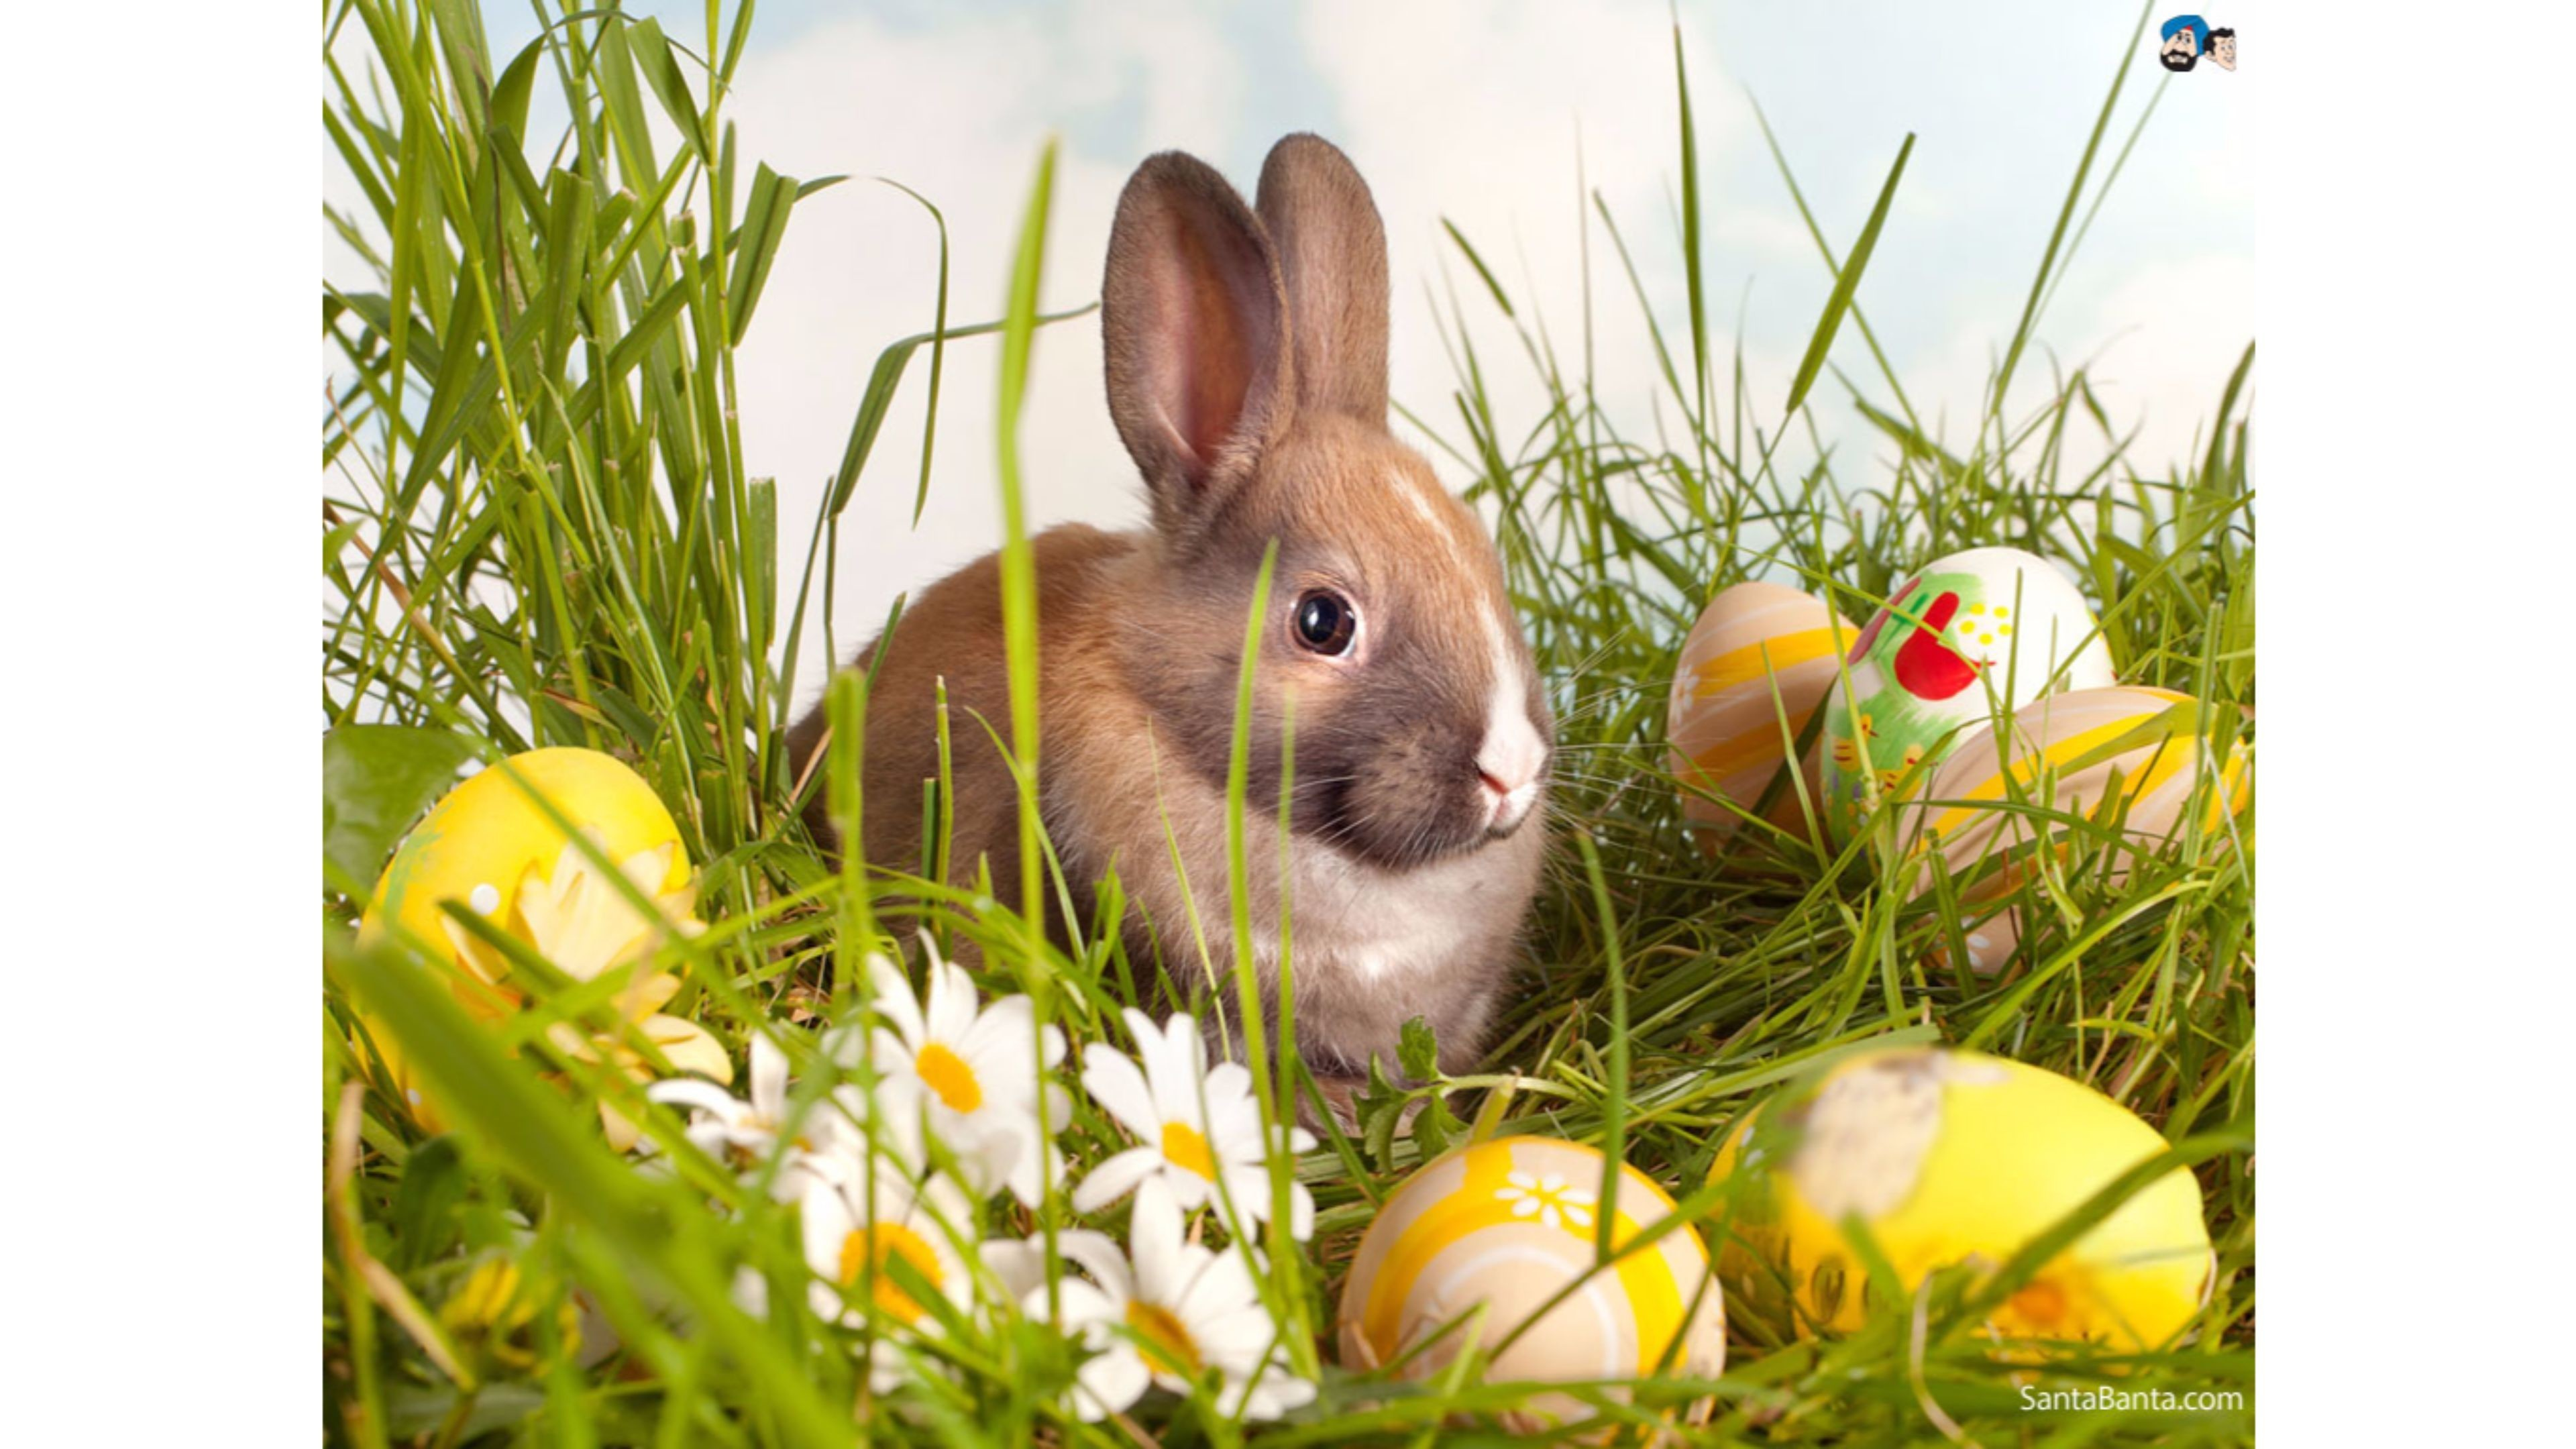 Bunny wallpapers 75 background pictures - Easter bunny wallpaper ...